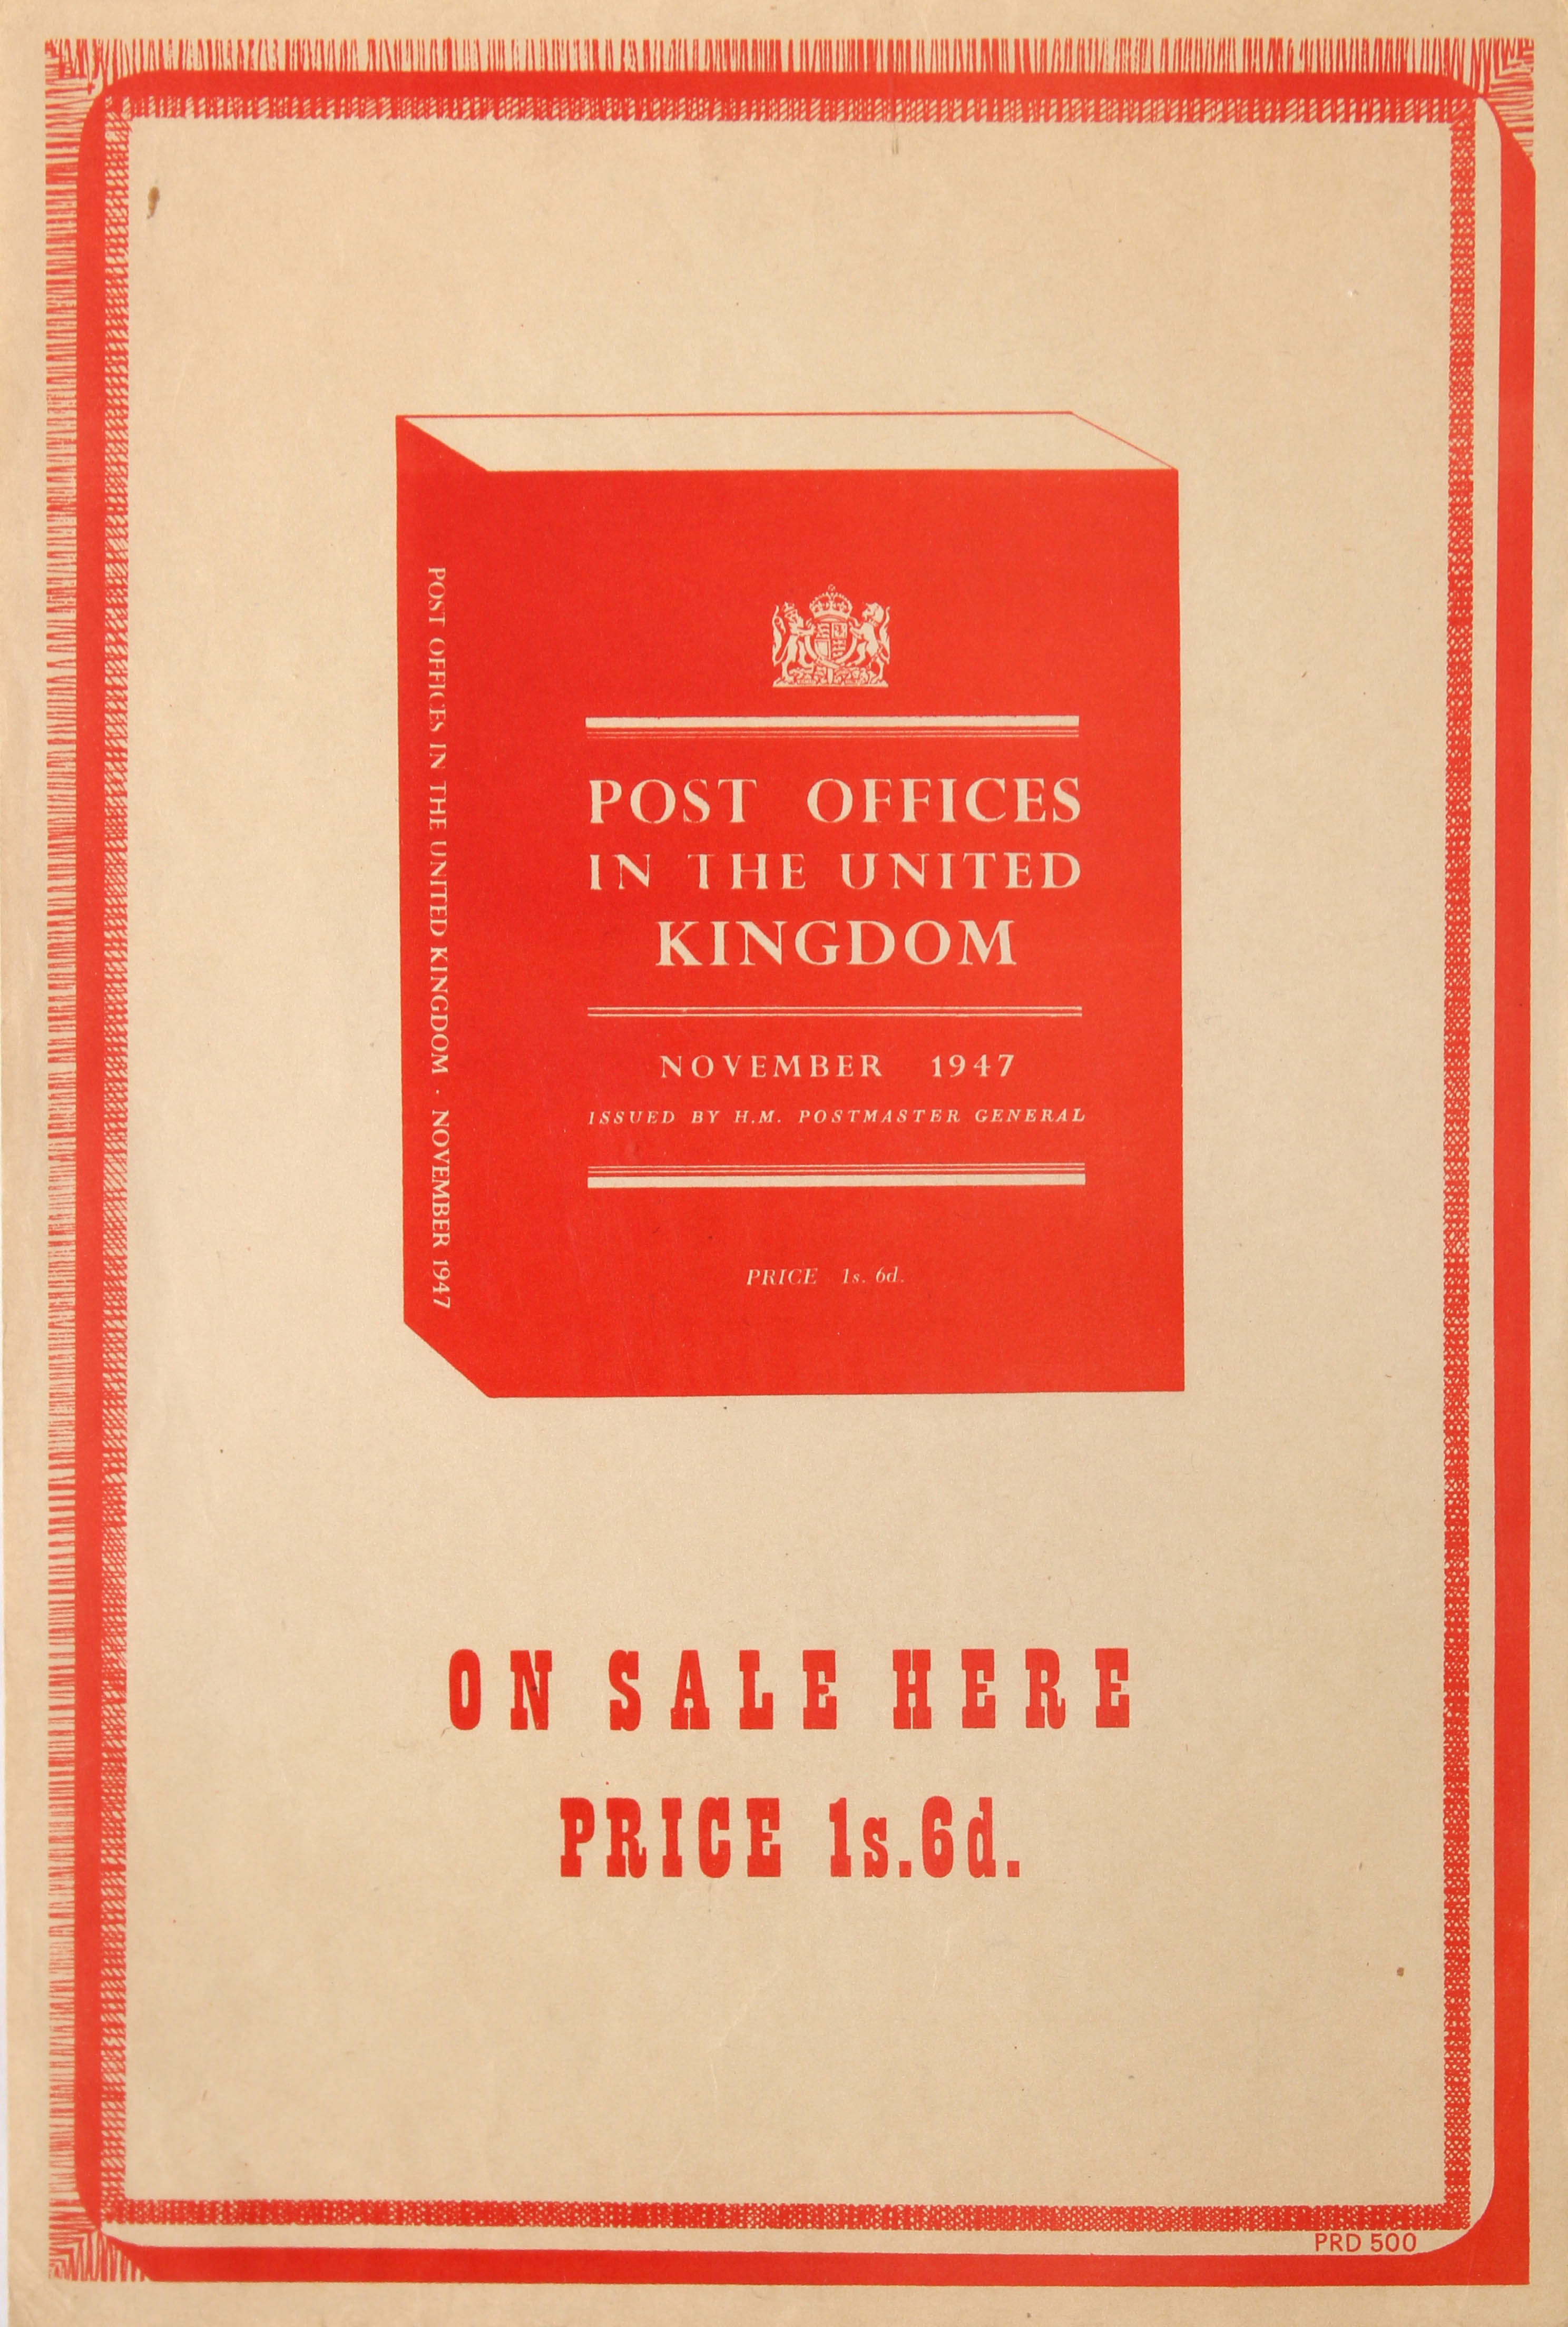 Lot 1402 - Post Offices in the United Kingdom November 1947